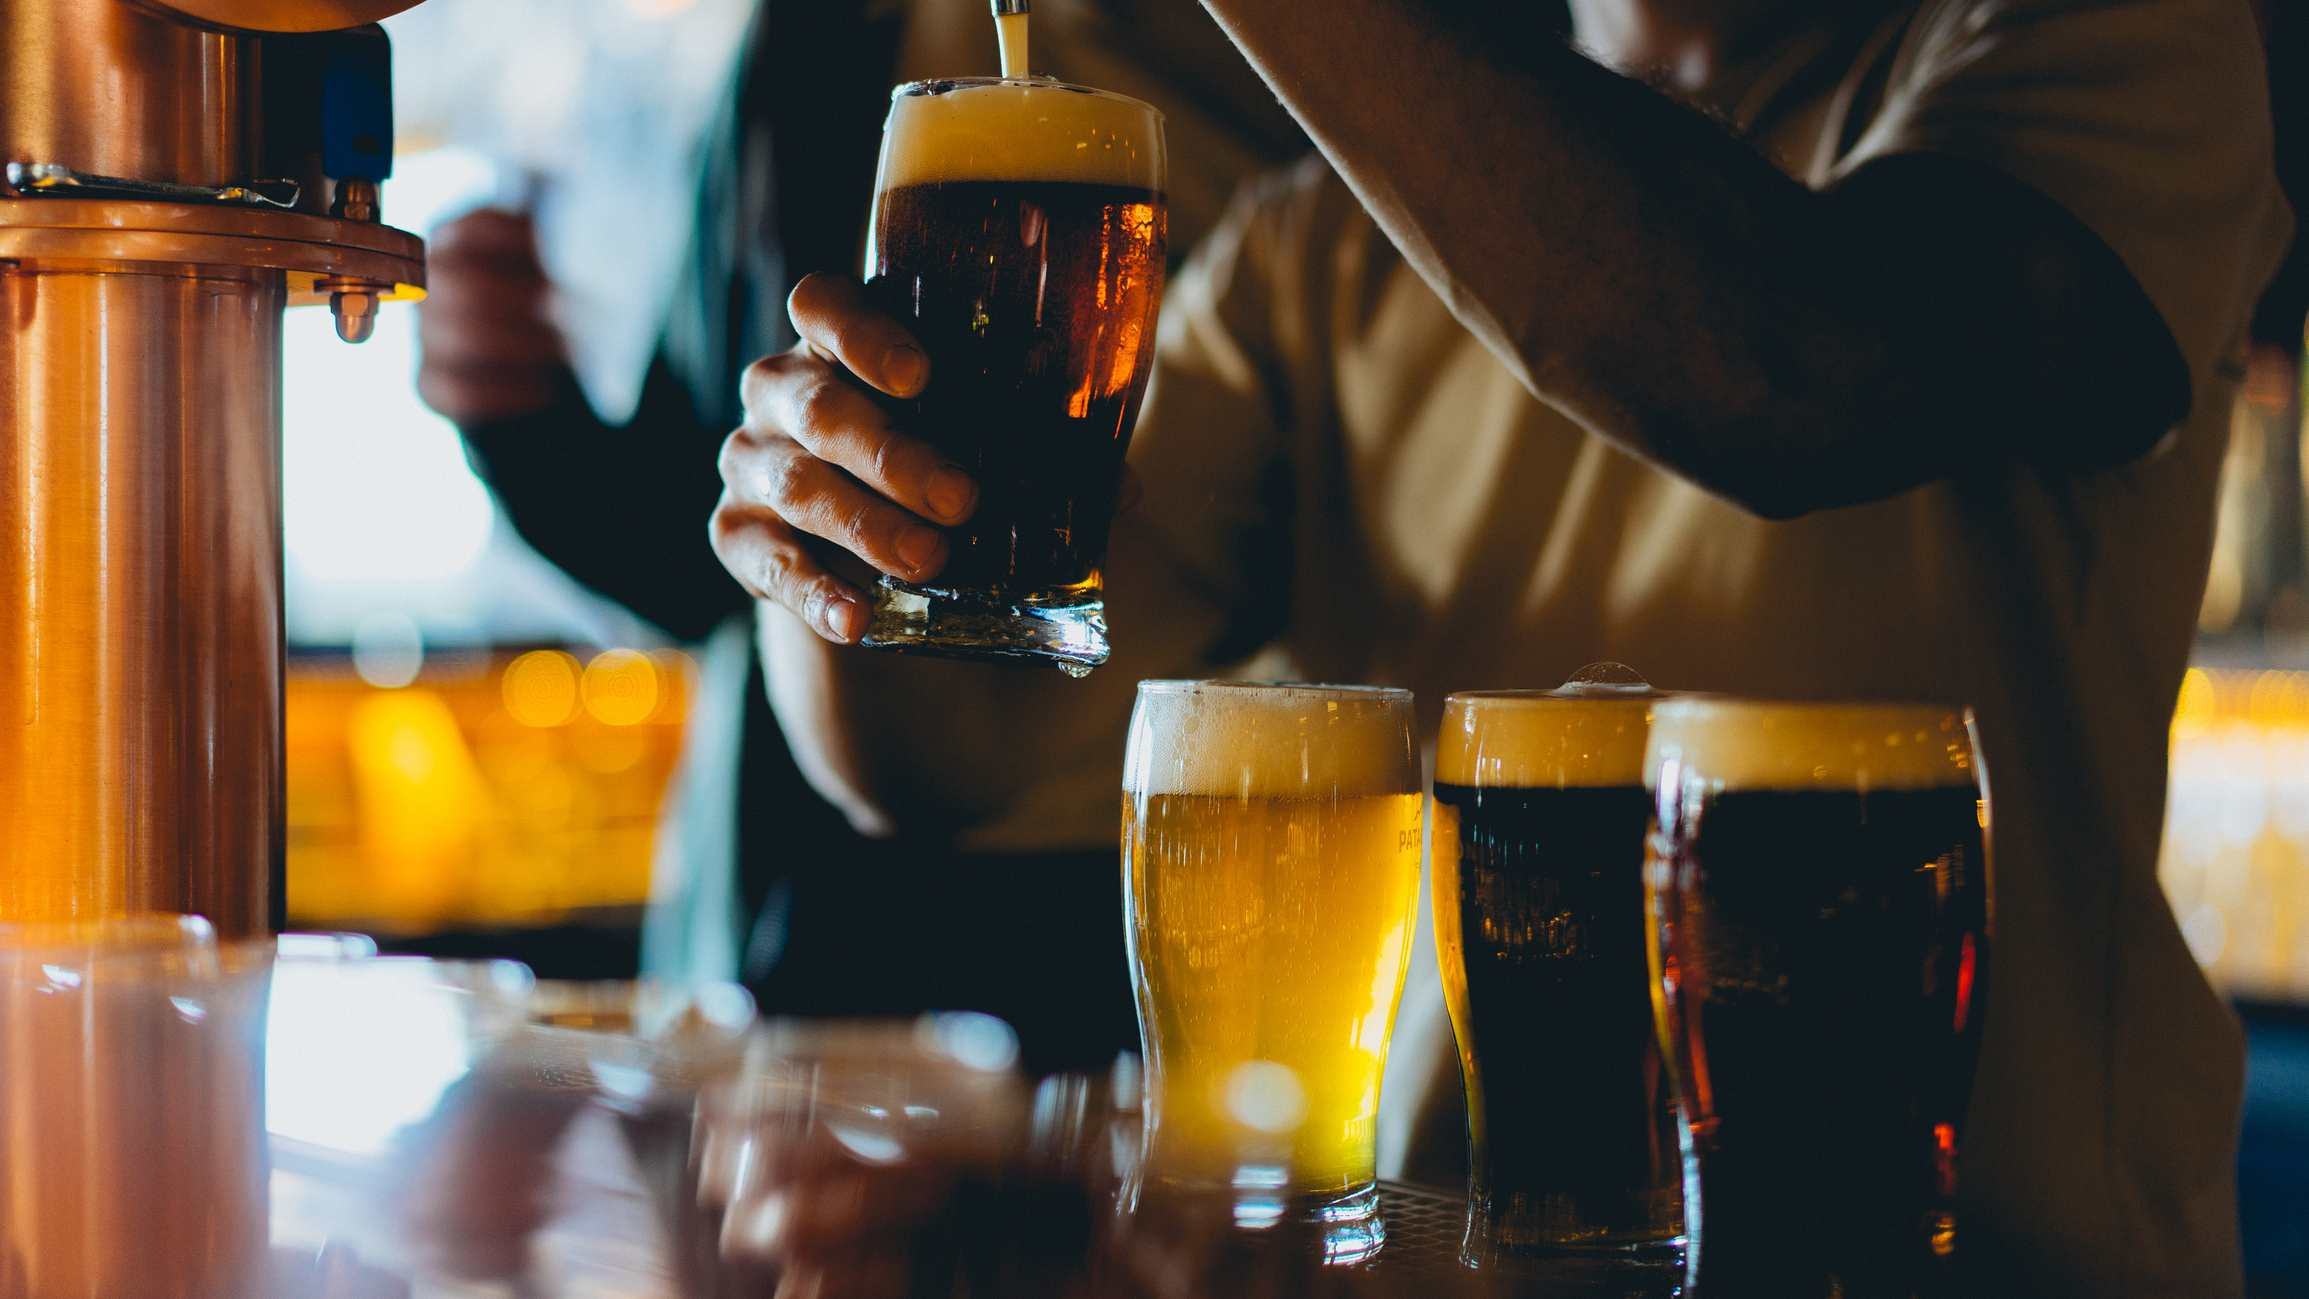 Man pouring beer into pint glasses